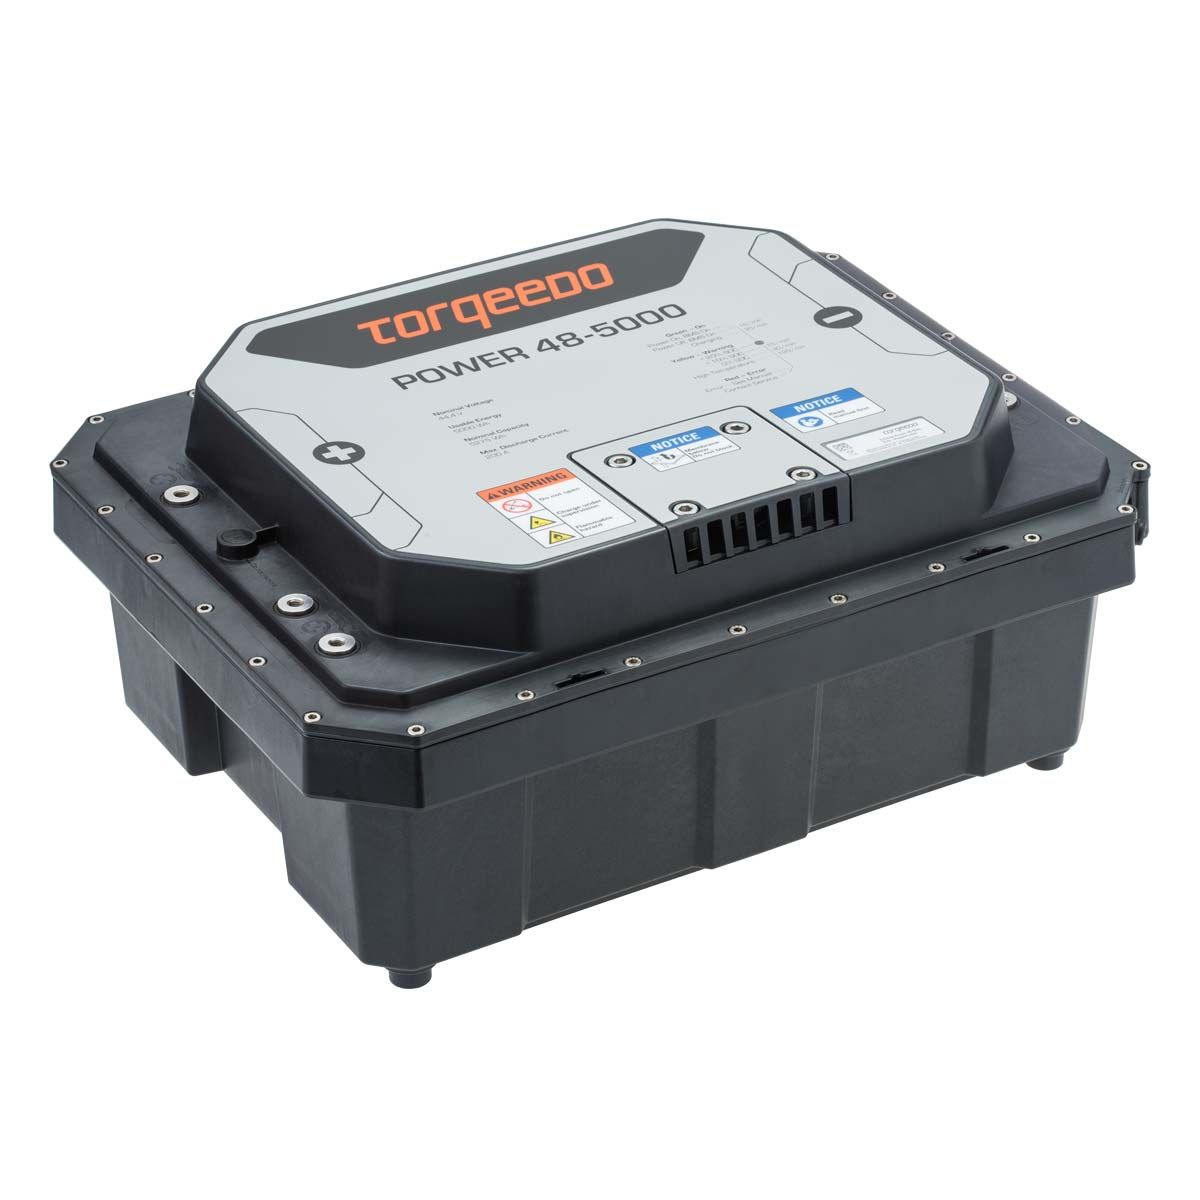 Torqeedo Power 48-5000 Hochleistungs Batterie Akku